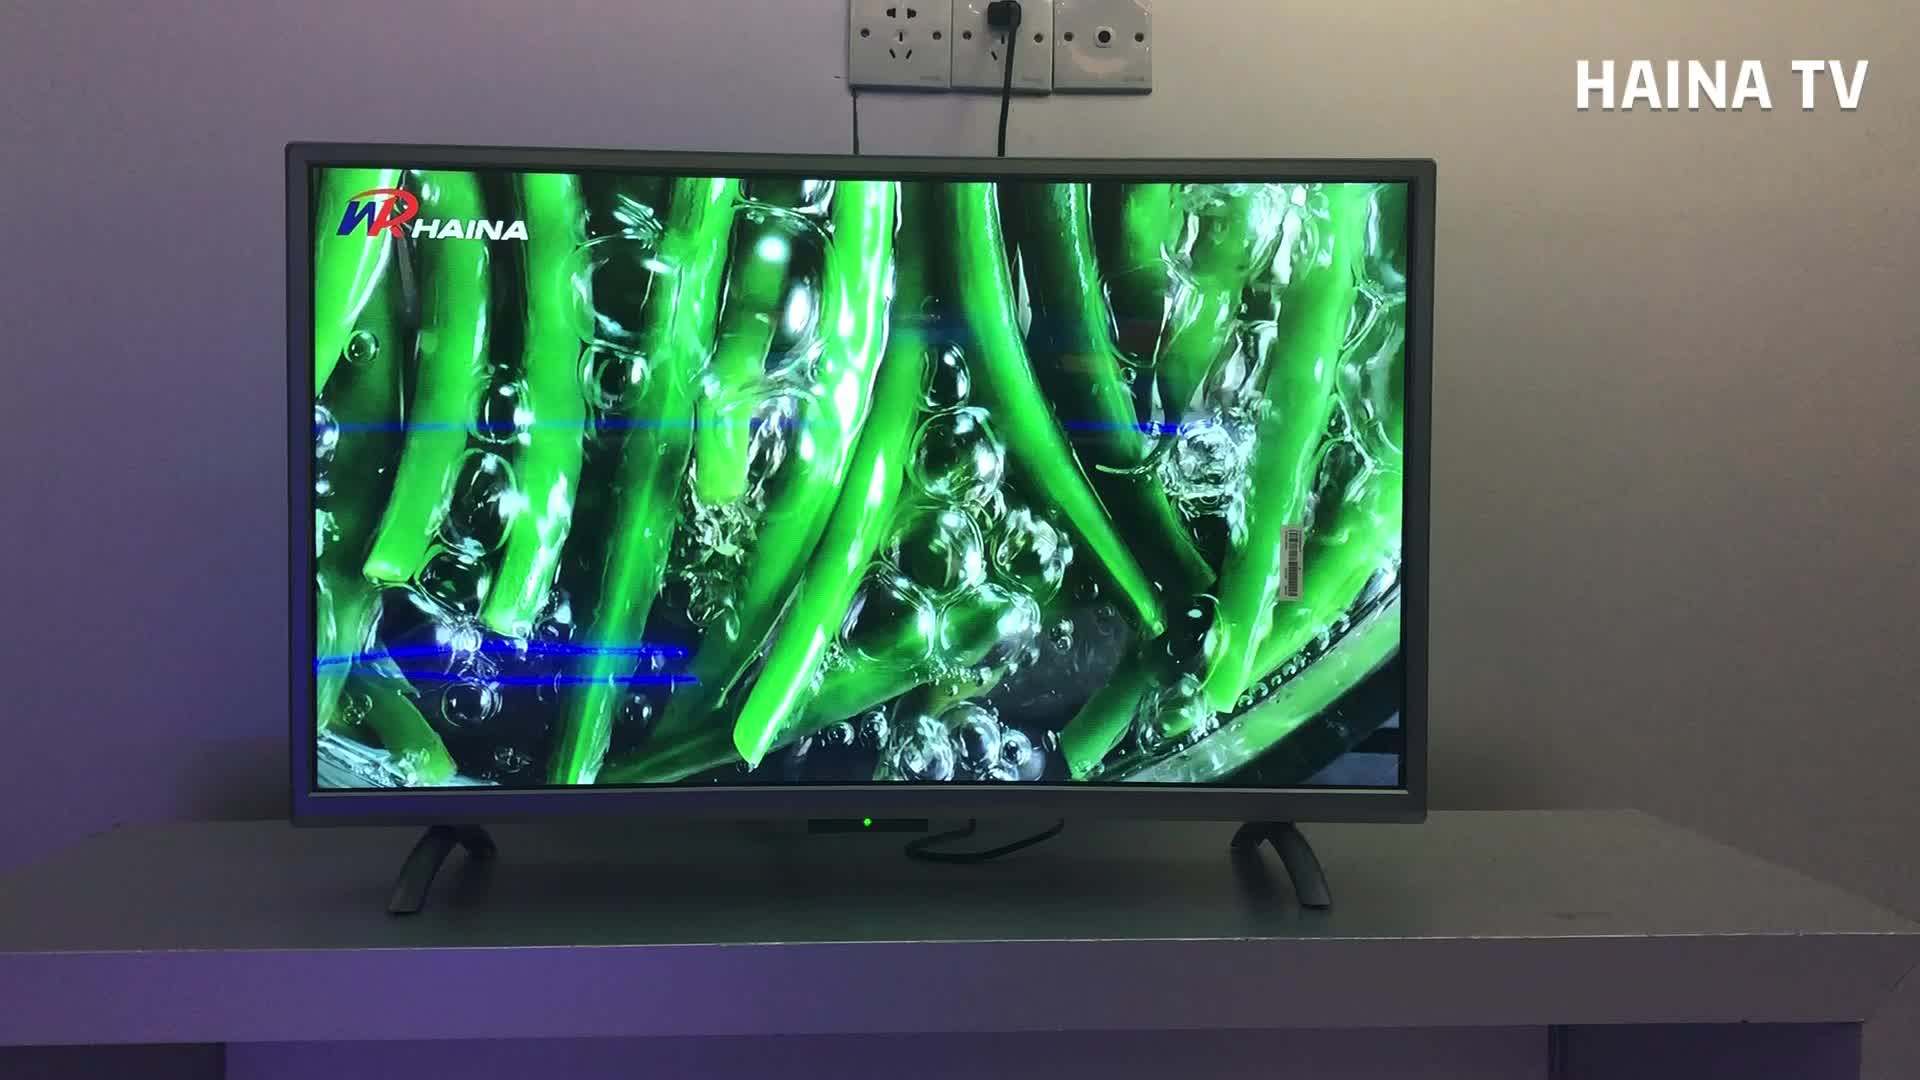 Haina china 32inch led lcd smart curved tv television cheap price in pakistan